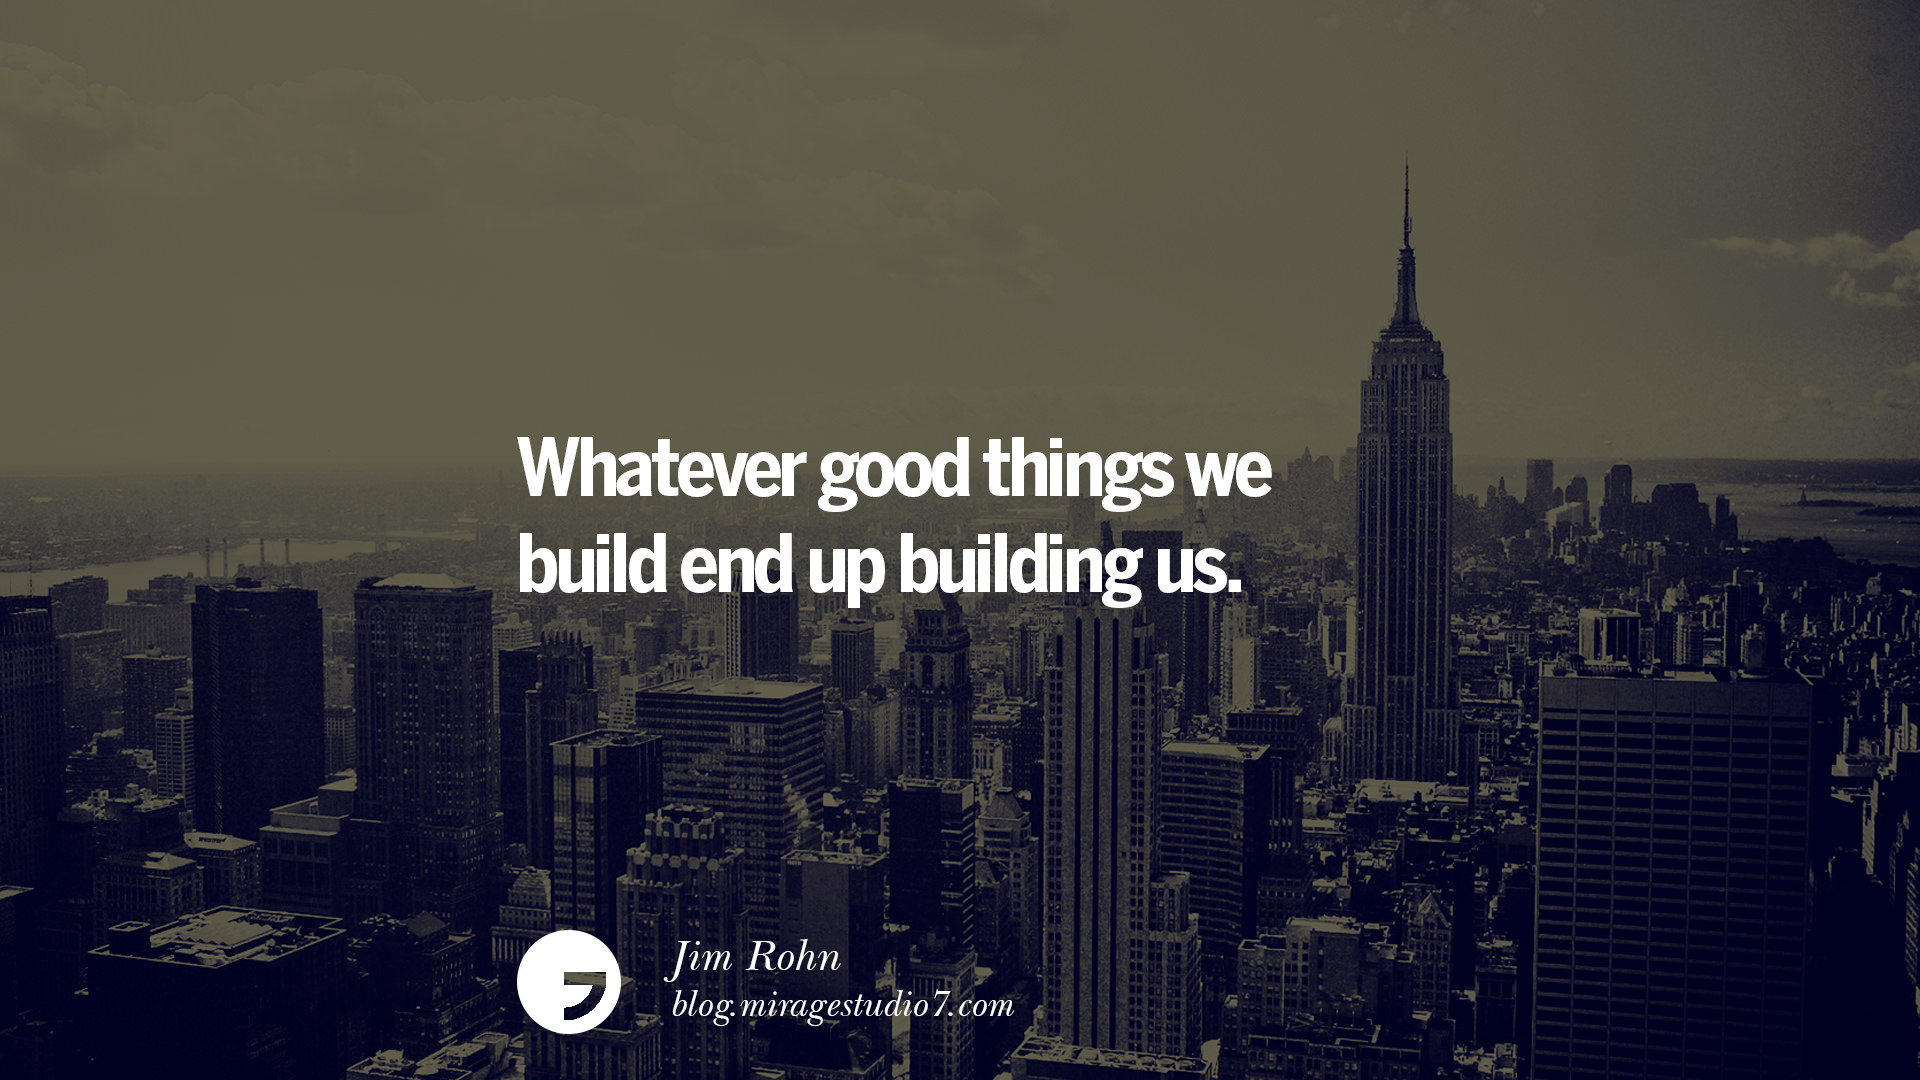 Good Quotes 28 Inspirational Architecture Quotesfamous Architects And